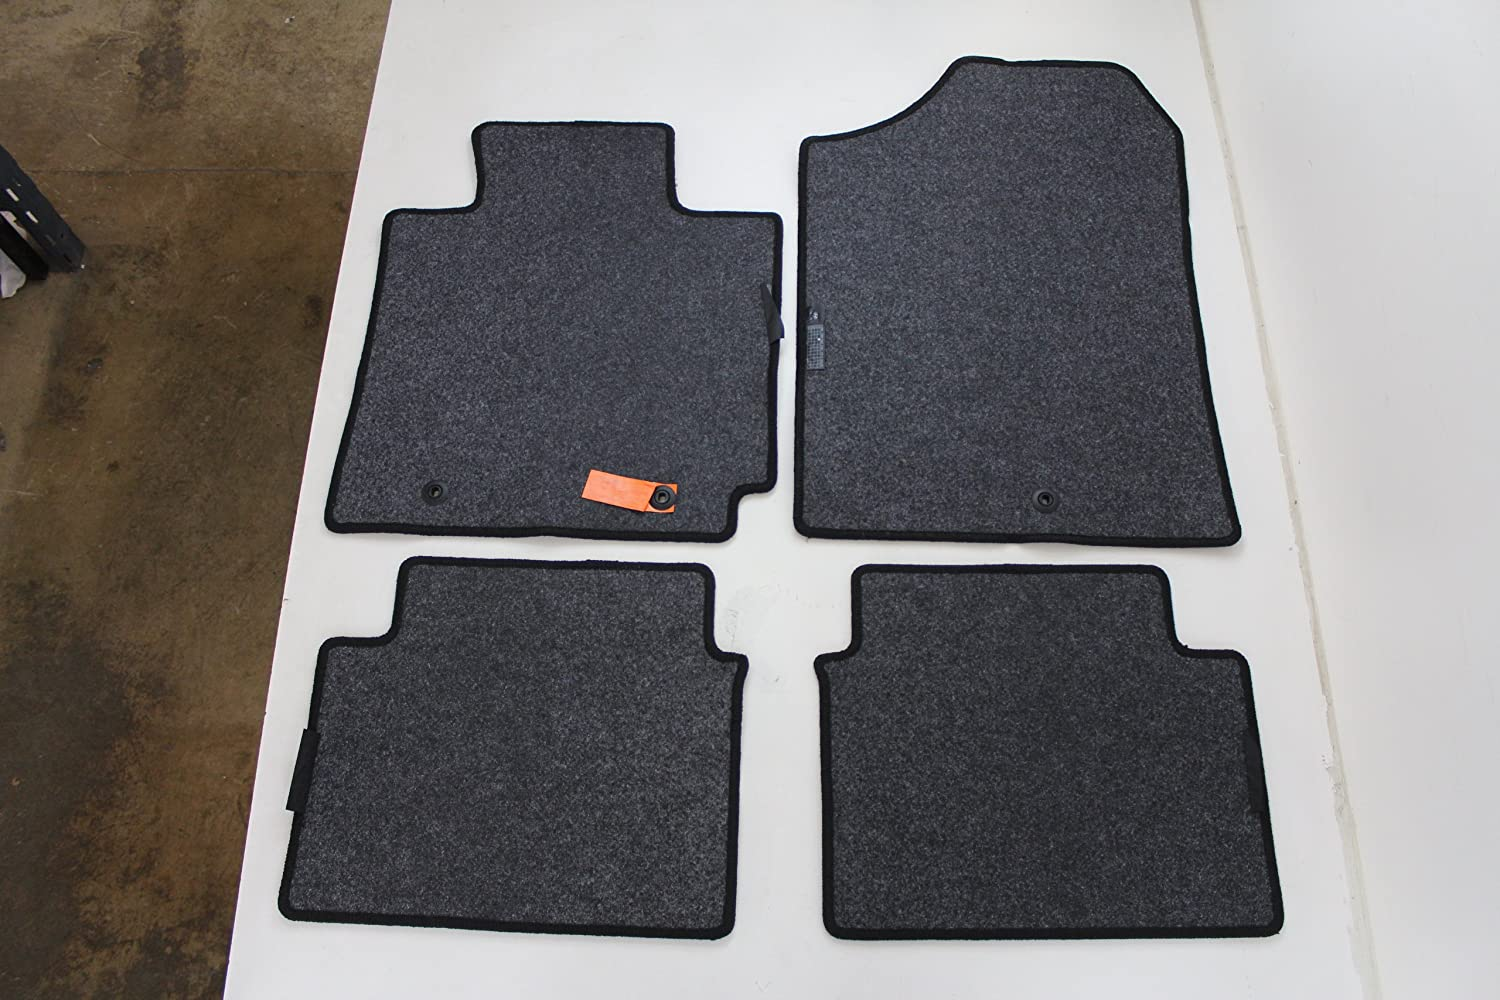 Genuine Hyundai Accessories 2VF14-AC000RY Black Carpeted Floor Mat with Veloster Logo for Hyundai Veloster